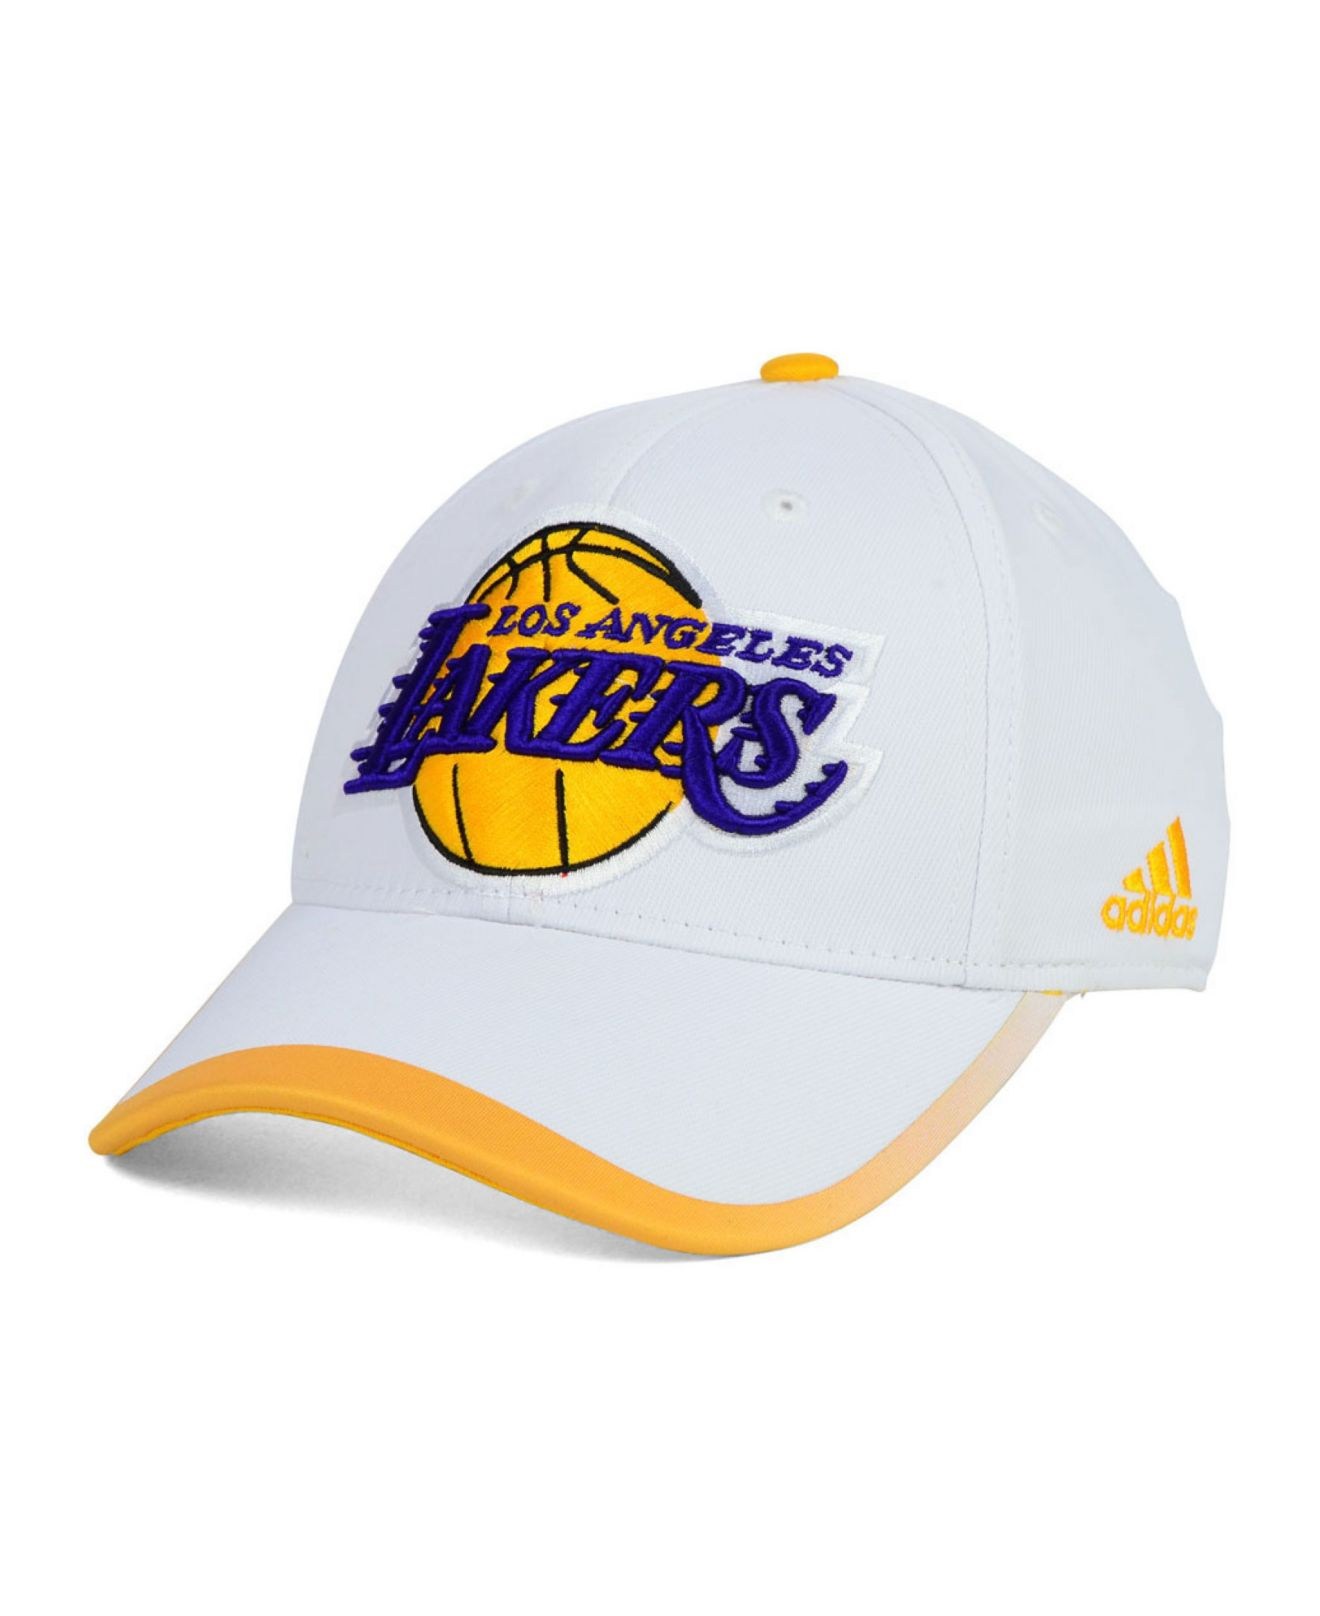 27f996b8a32 Lyst - adidas Los Angeles Lakers Timeout Flex Cap in White for Men